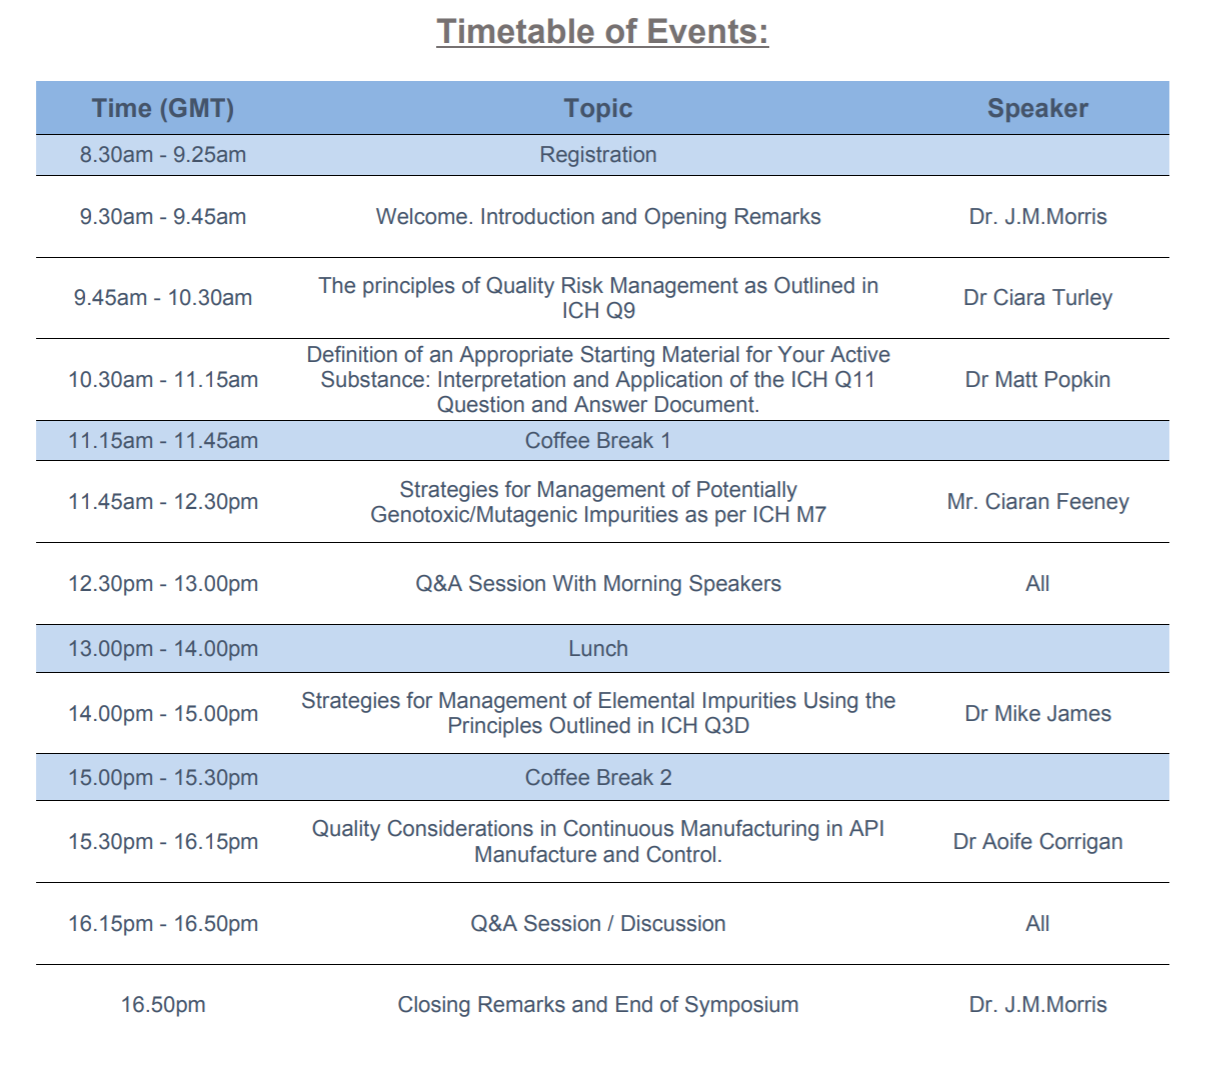 Timetable of Events